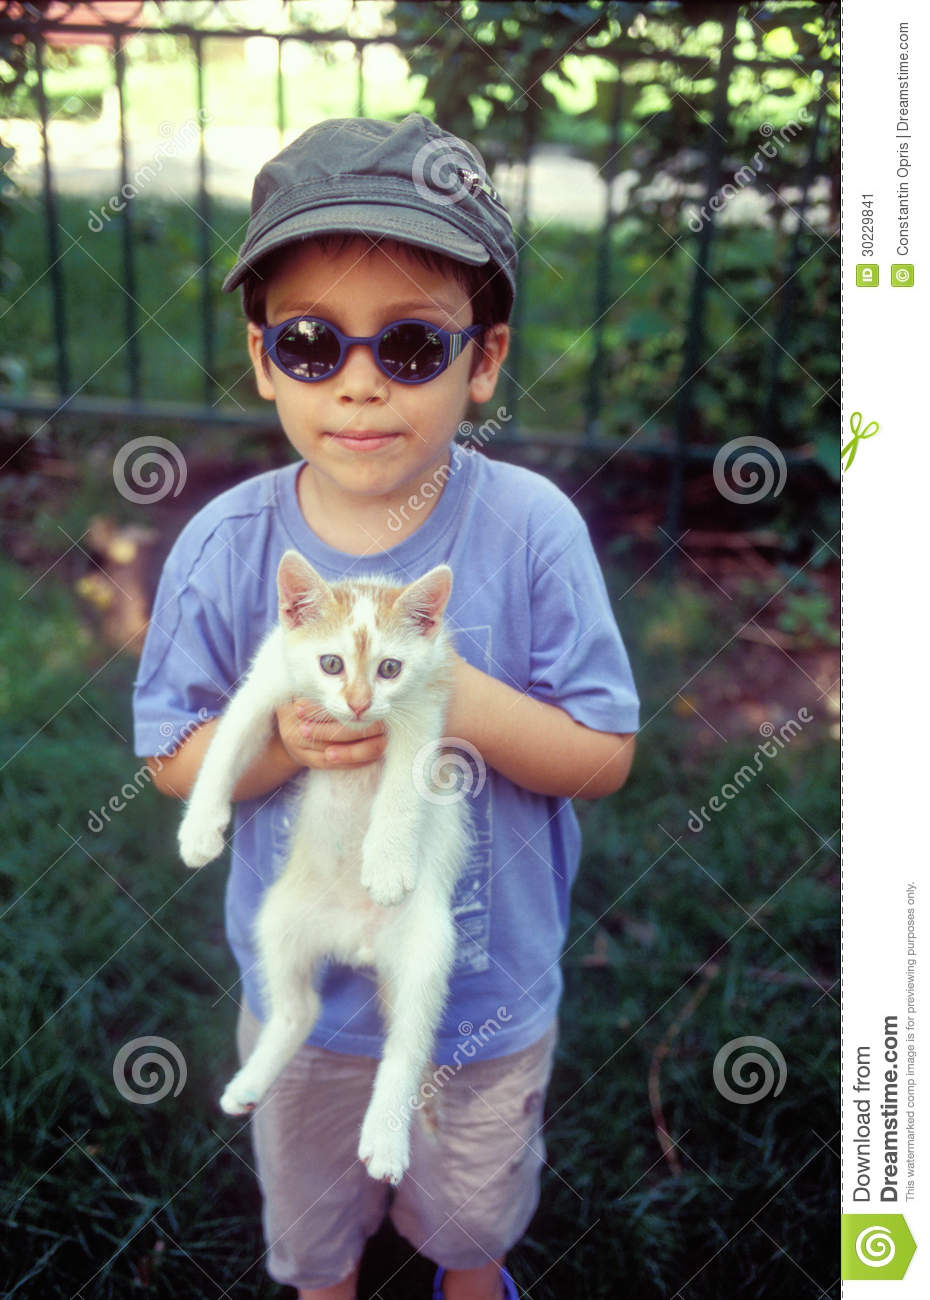 Cute Boy Wallpaper Free Download Boy Holding Cat Stock Image Image Of Scared Animal